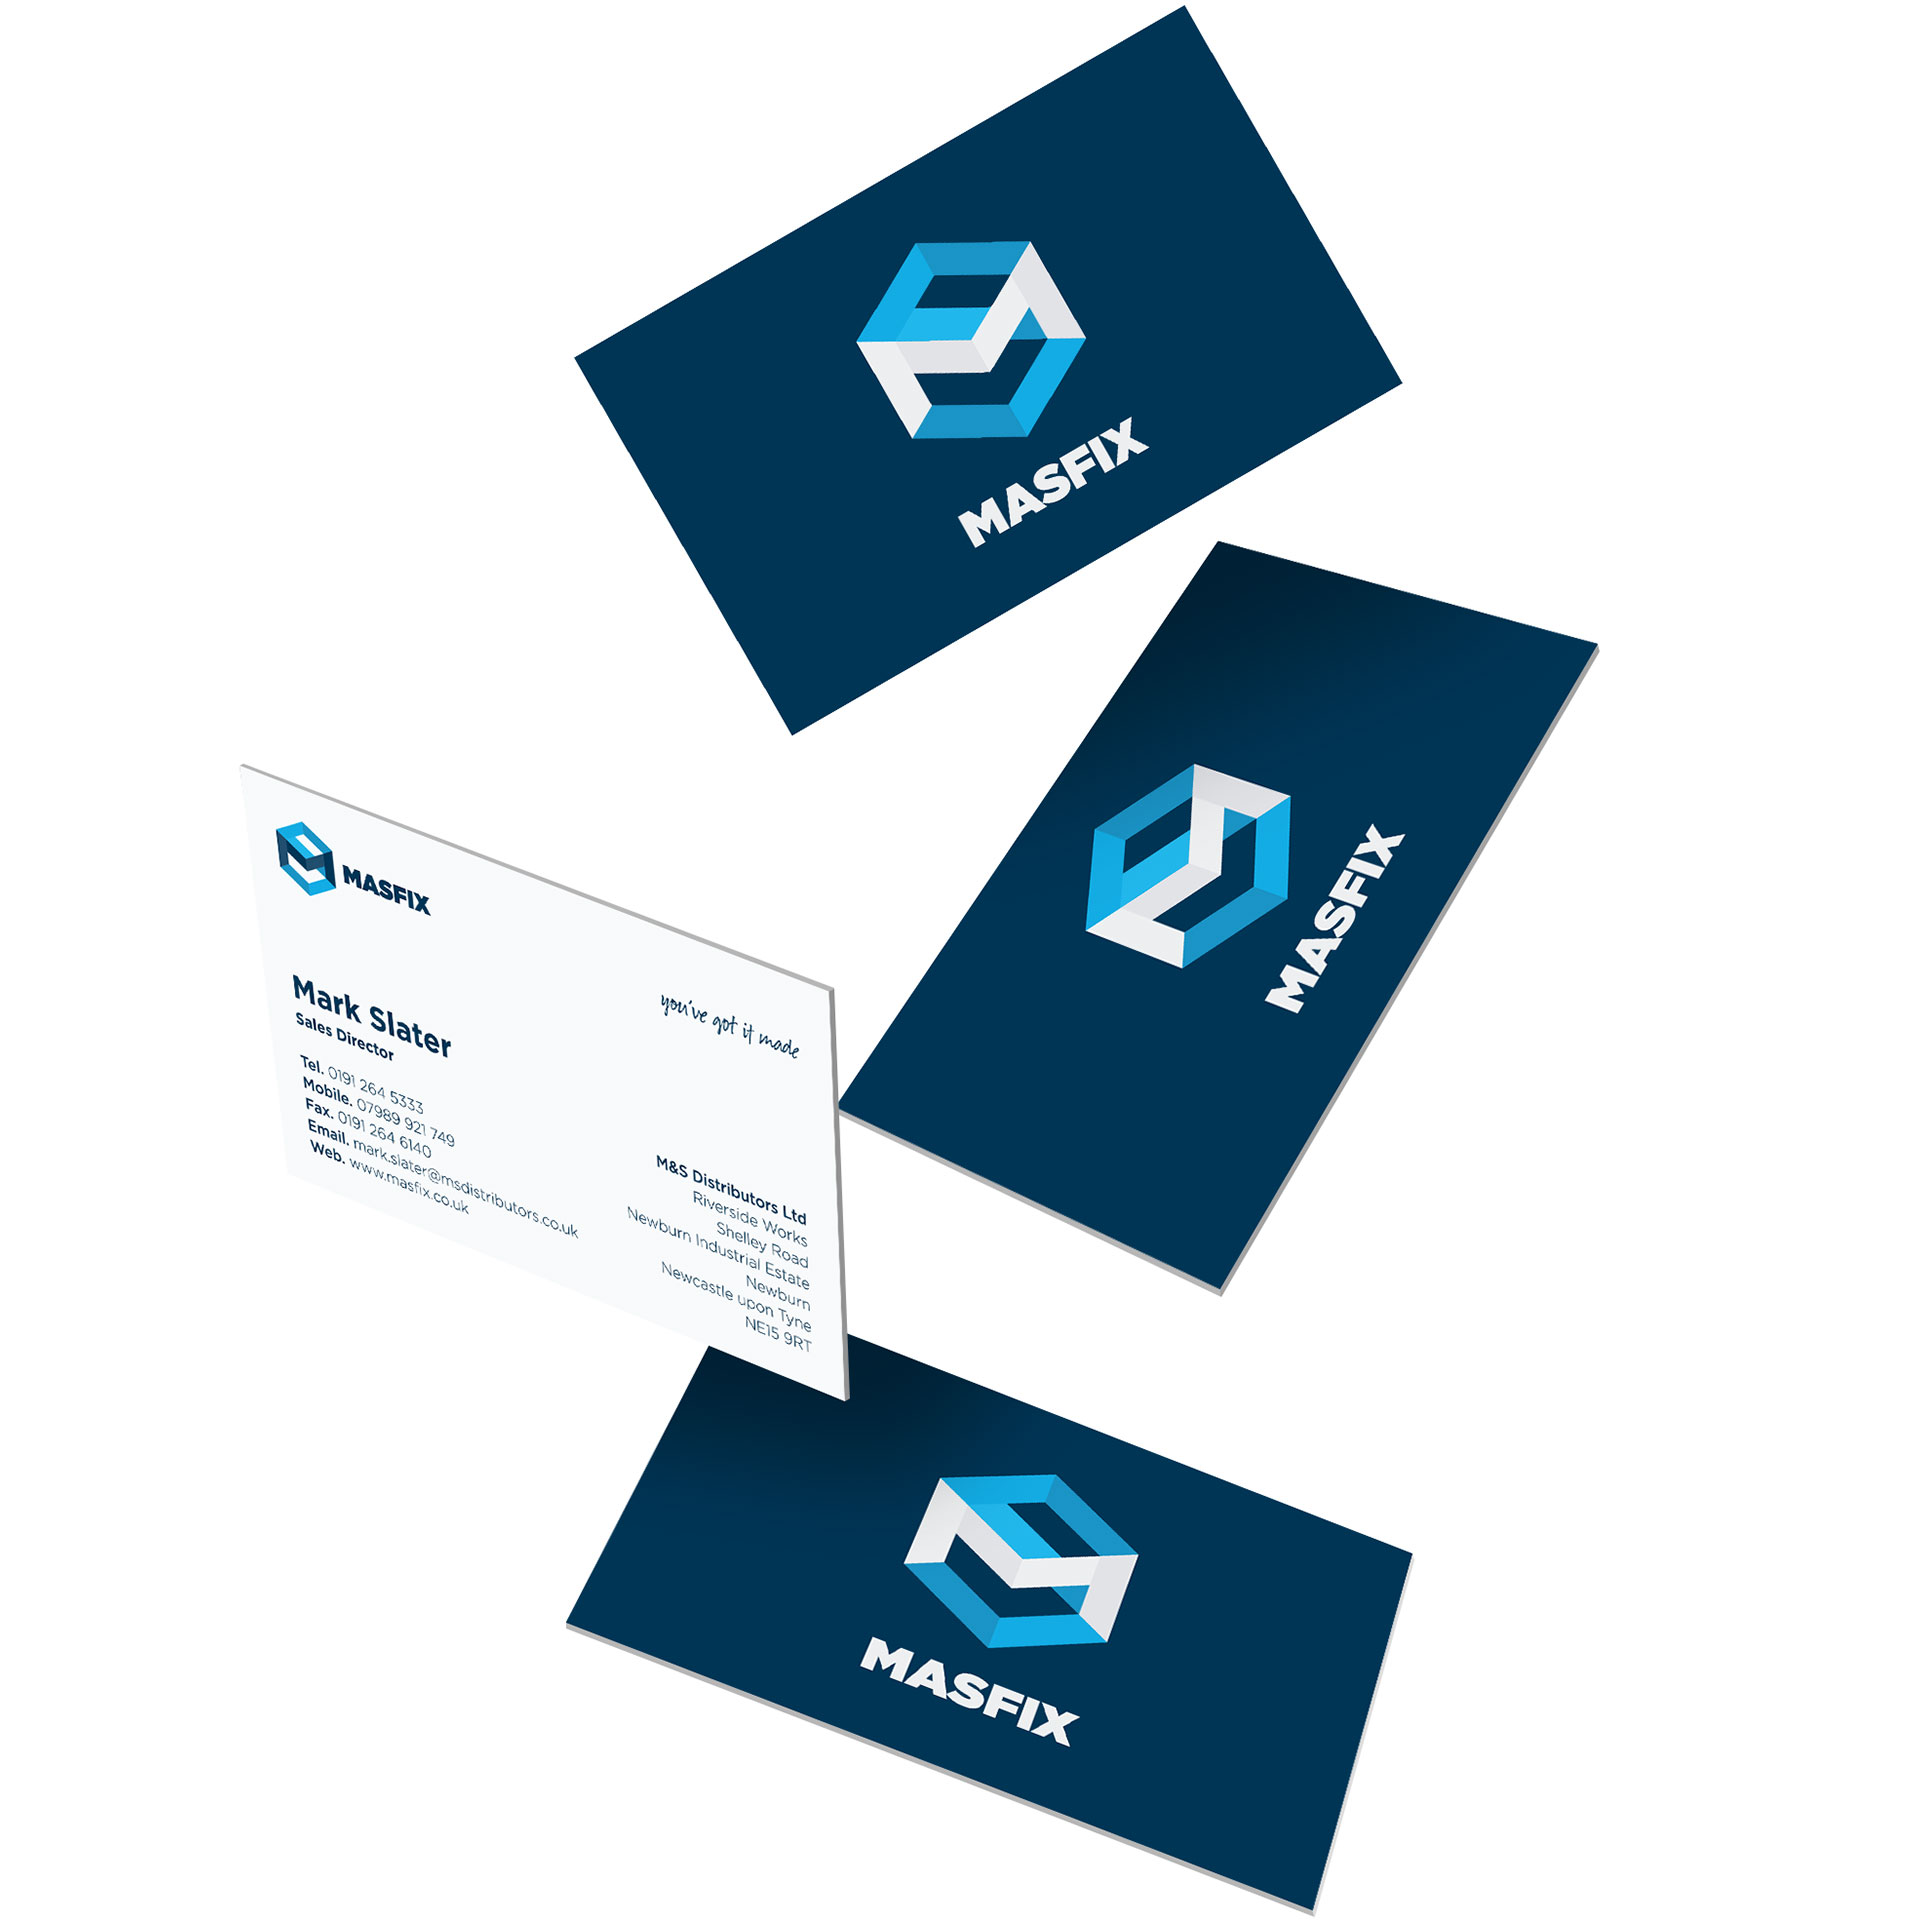 MasFix business cards